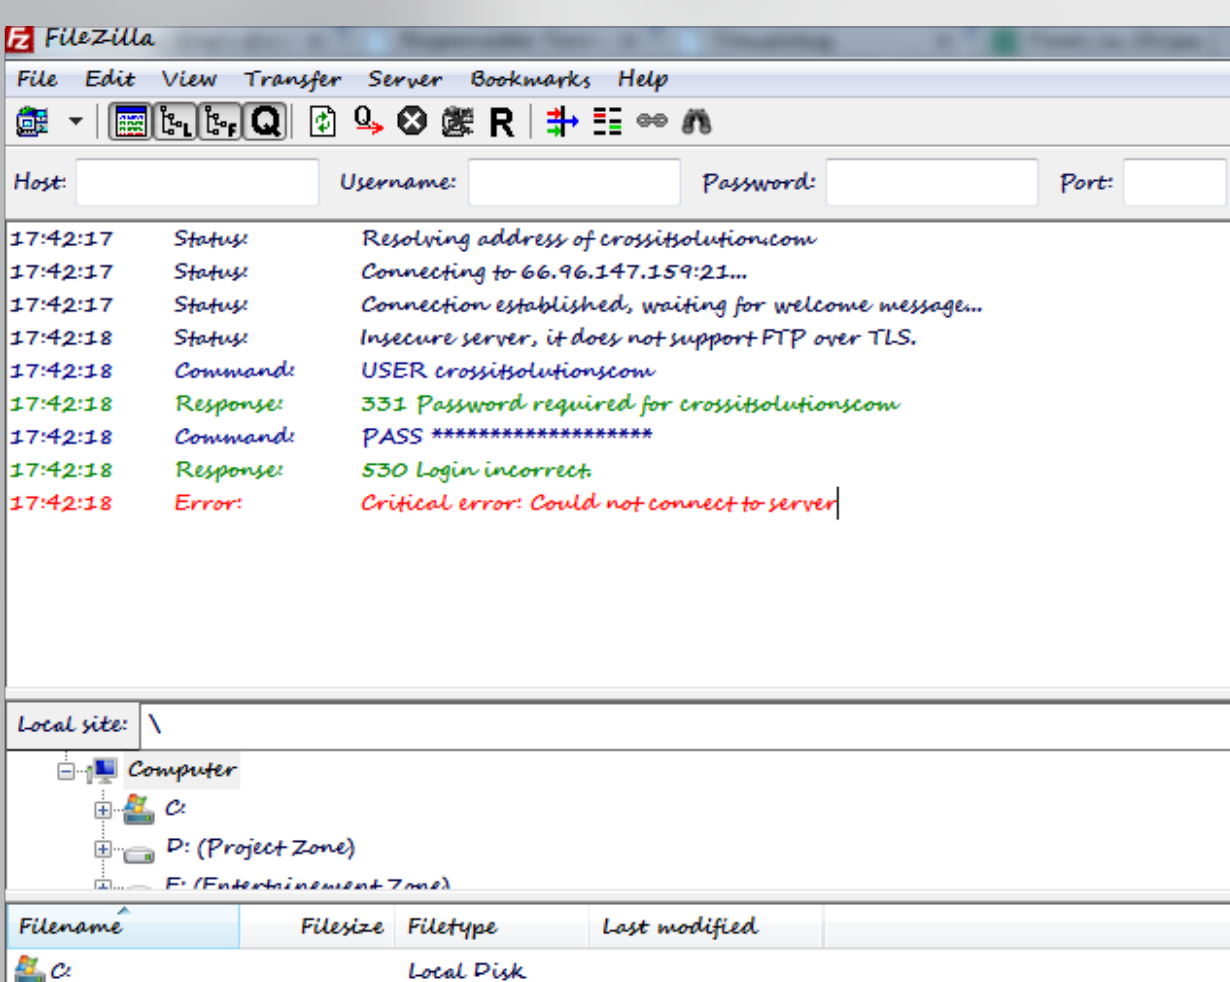 Files not uploading via Filezilla, what could be the reason